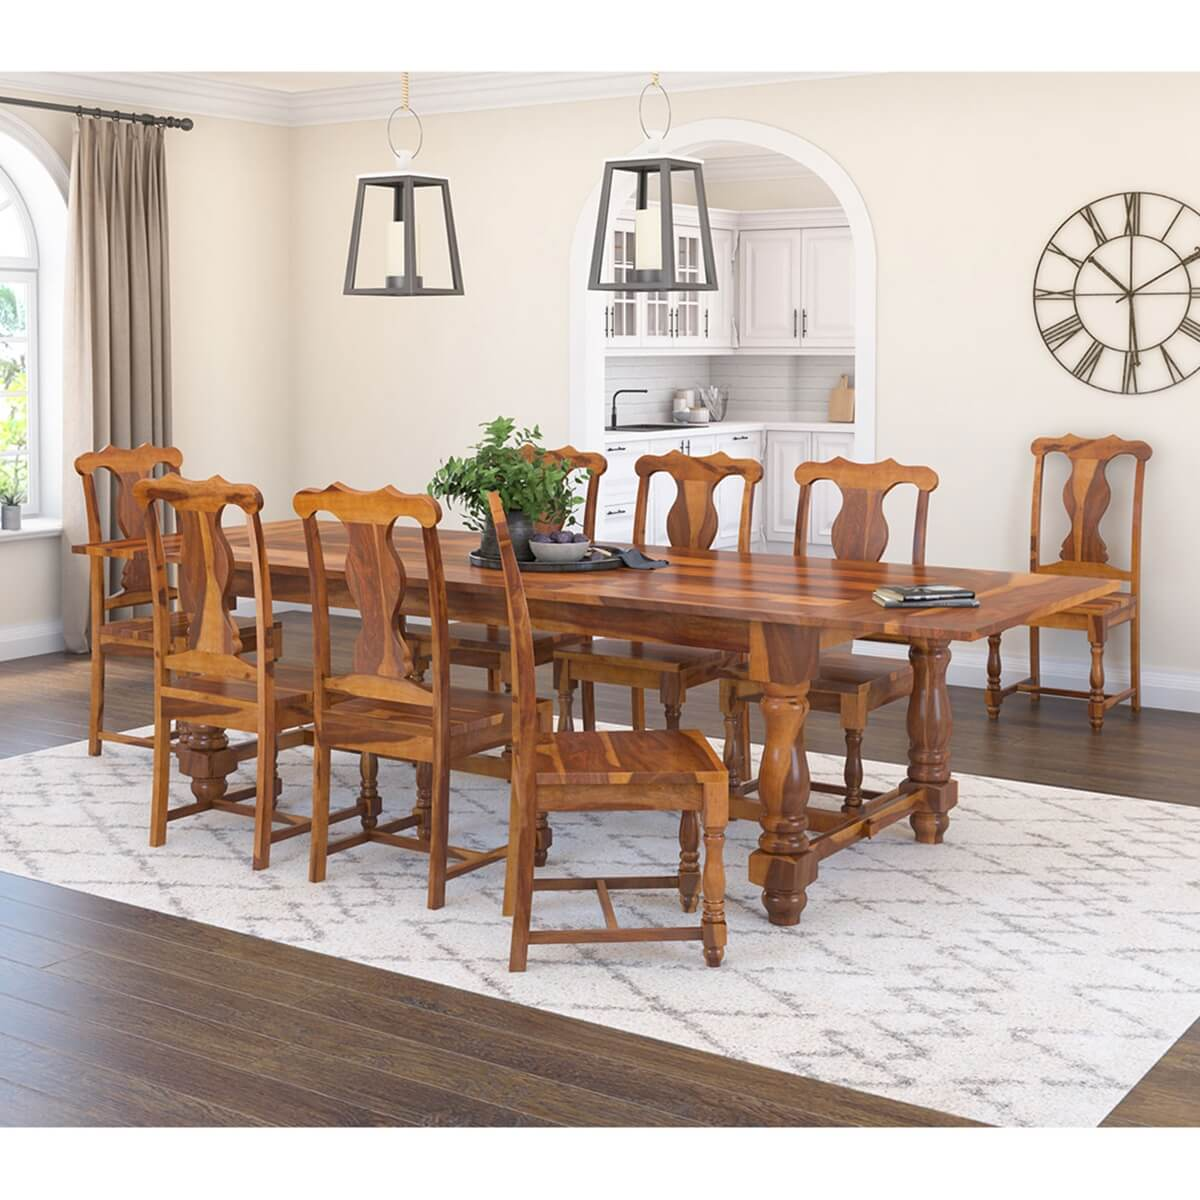 Rustic solid wood dining table chair set furniture w for Wooden dining table chairs